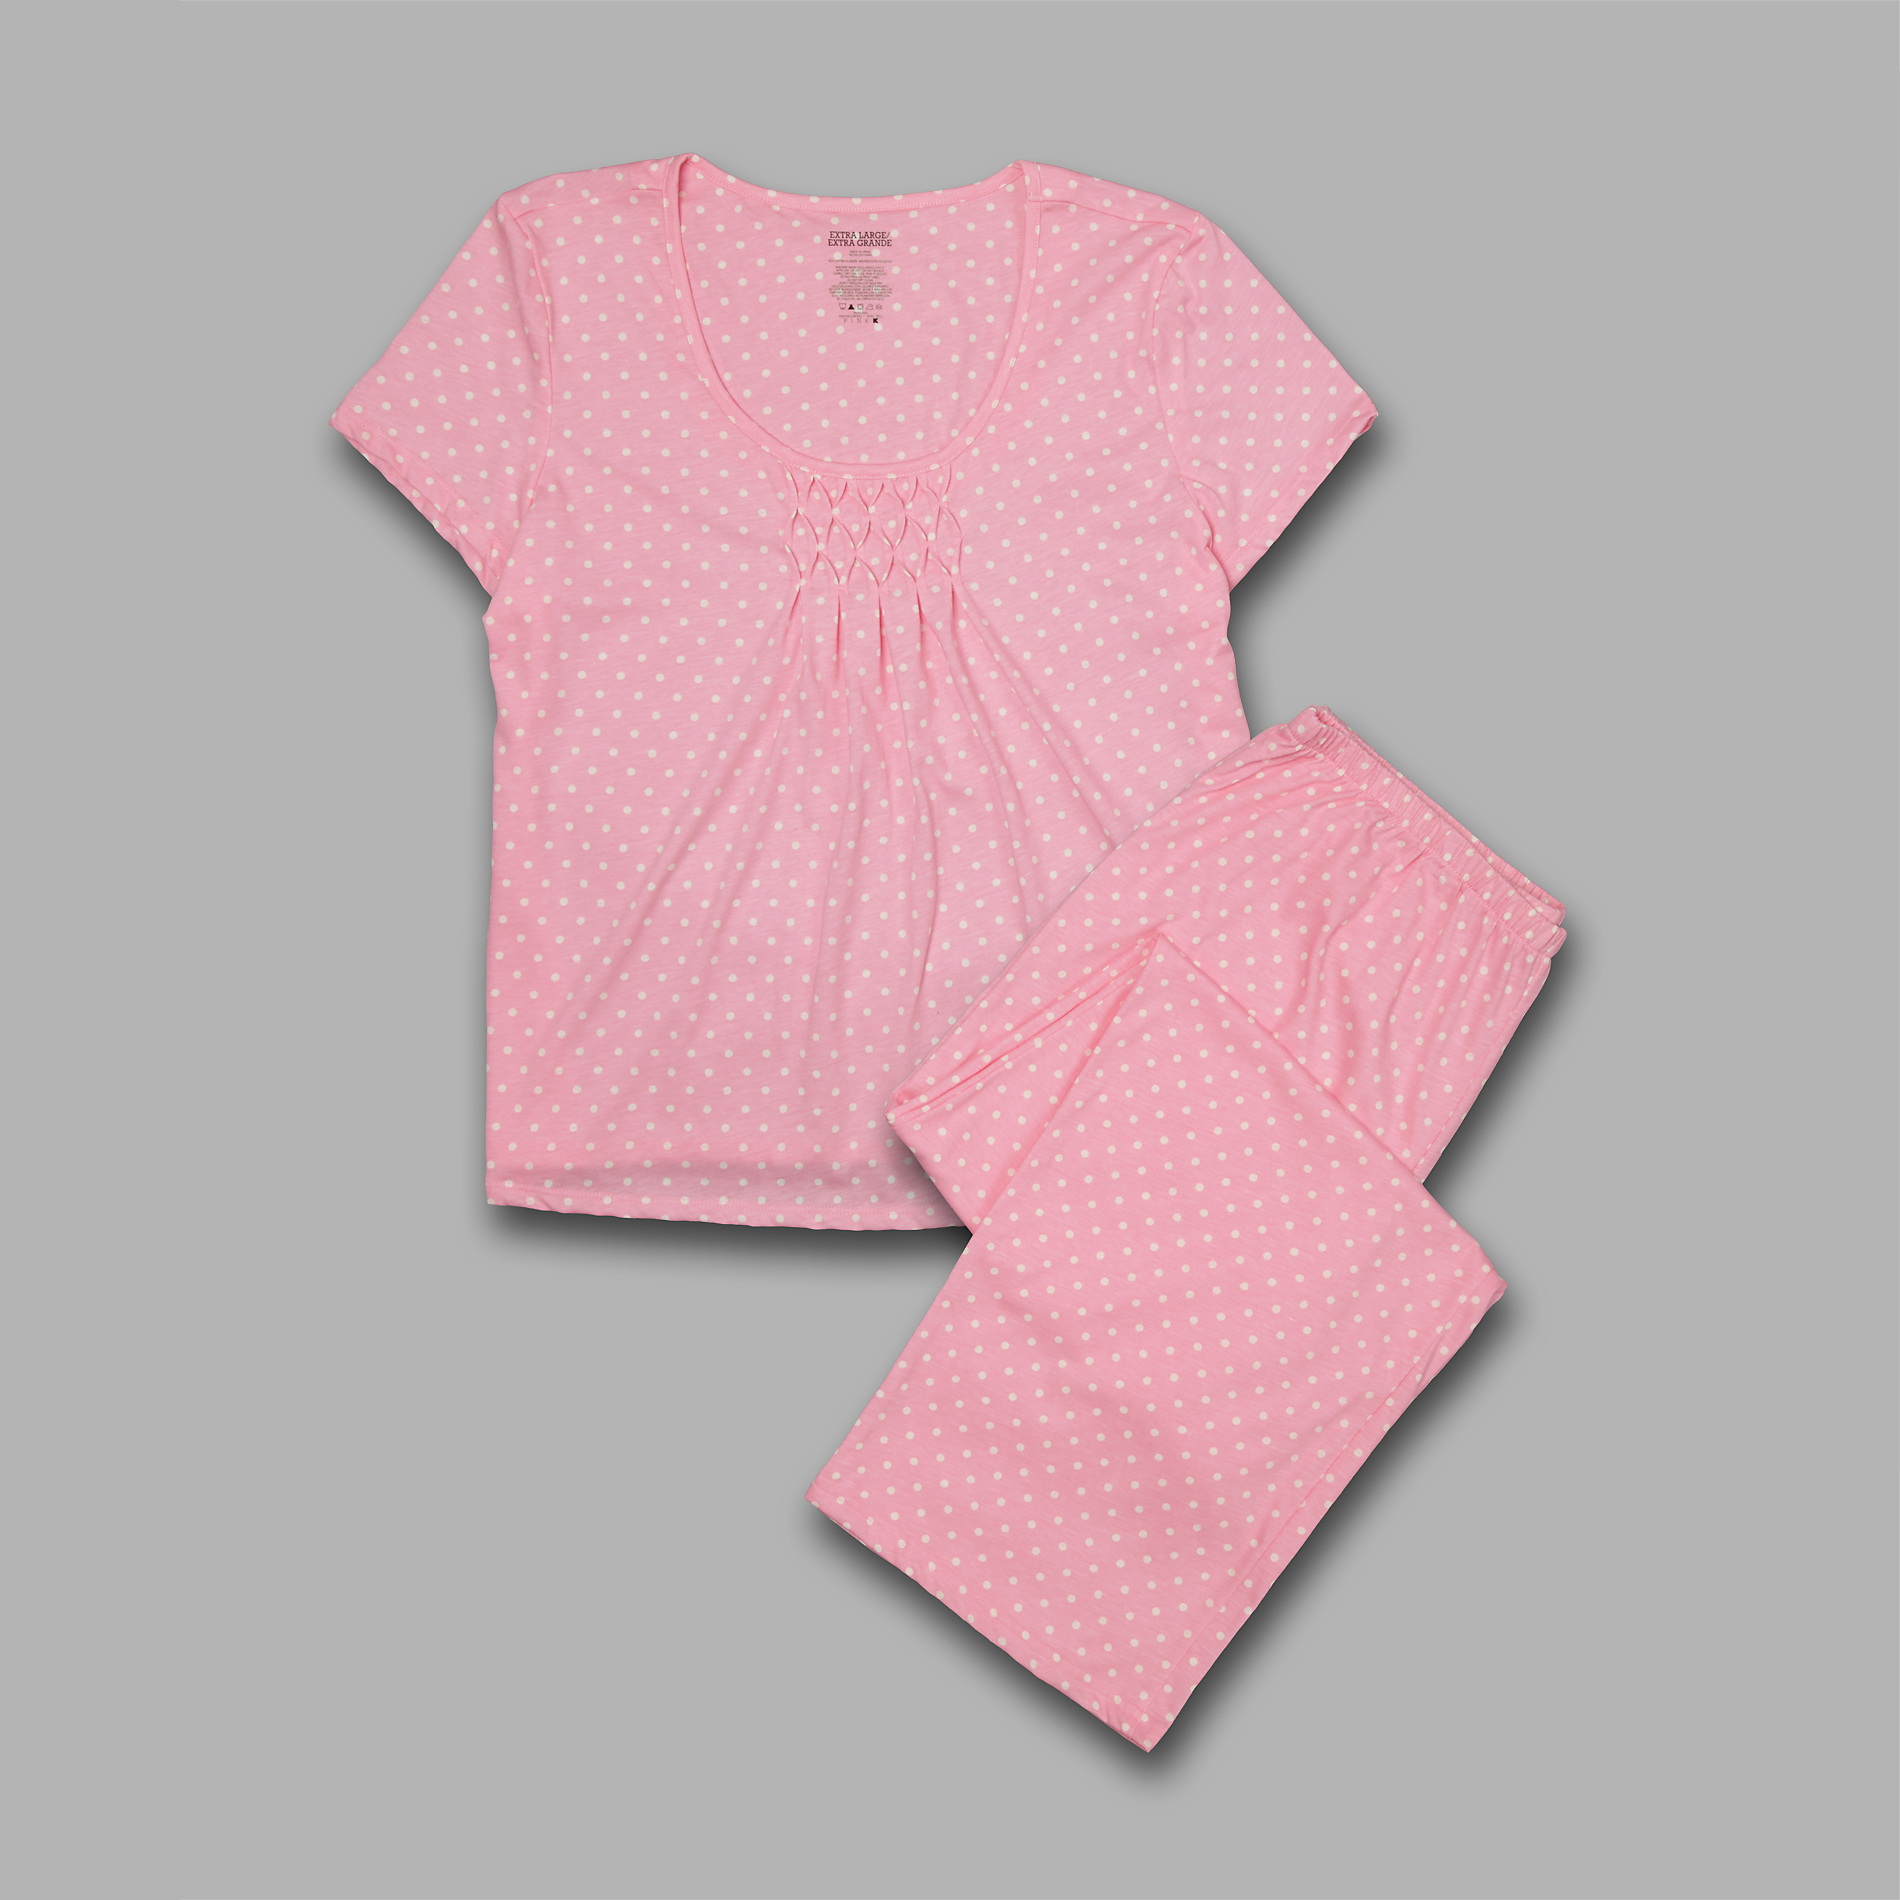 Pink K Women's Pajamas - Polka Dot at Kmart.com